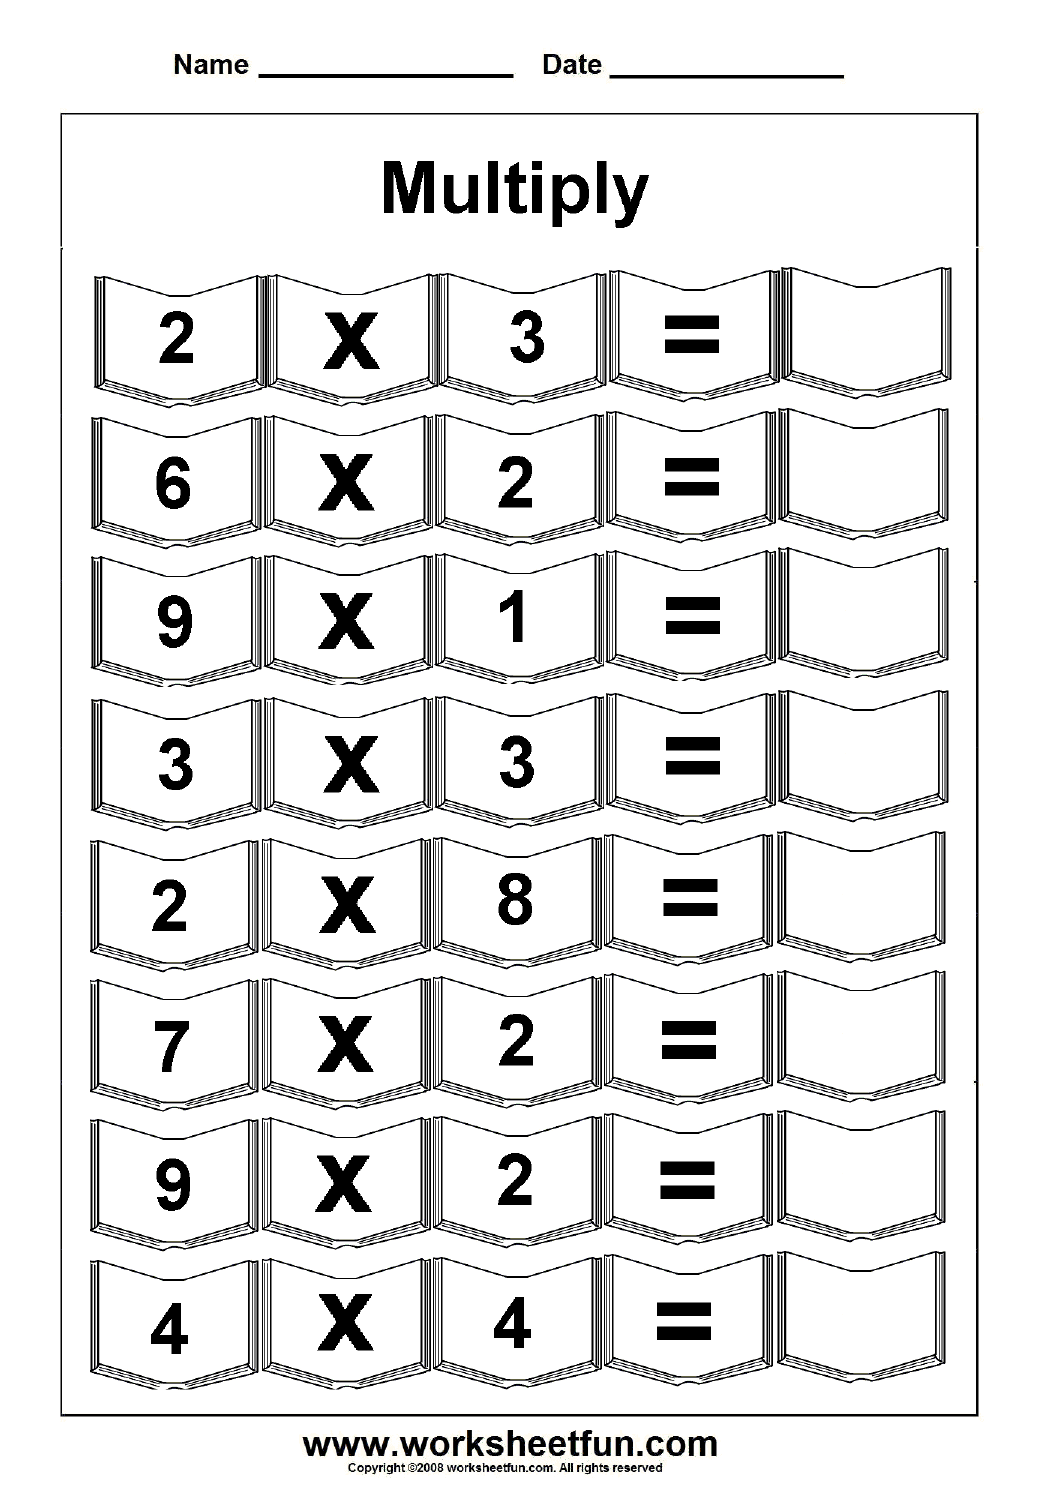 Multiplication 5 Worksheets Free Printable Worksheets